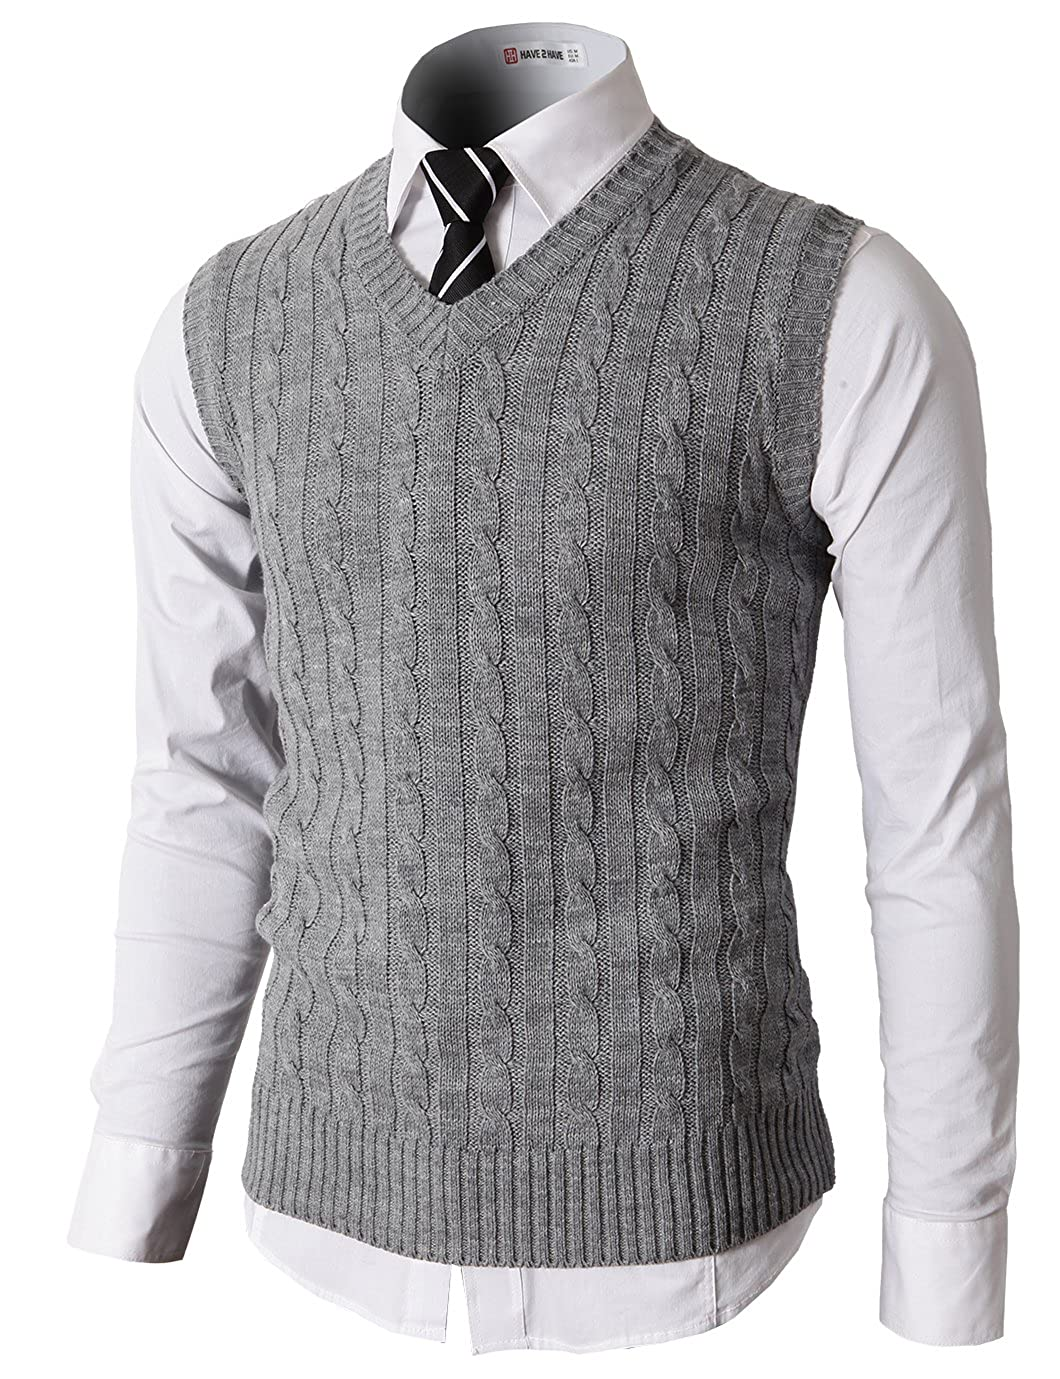 Men's Vintage Sweaters – 1920s to 1960s Retro Jumpers H2H Mens Casual Knitted Slim Fit V-neck Vest With Twisted Patterned $26.80 AT vintagedancer.com